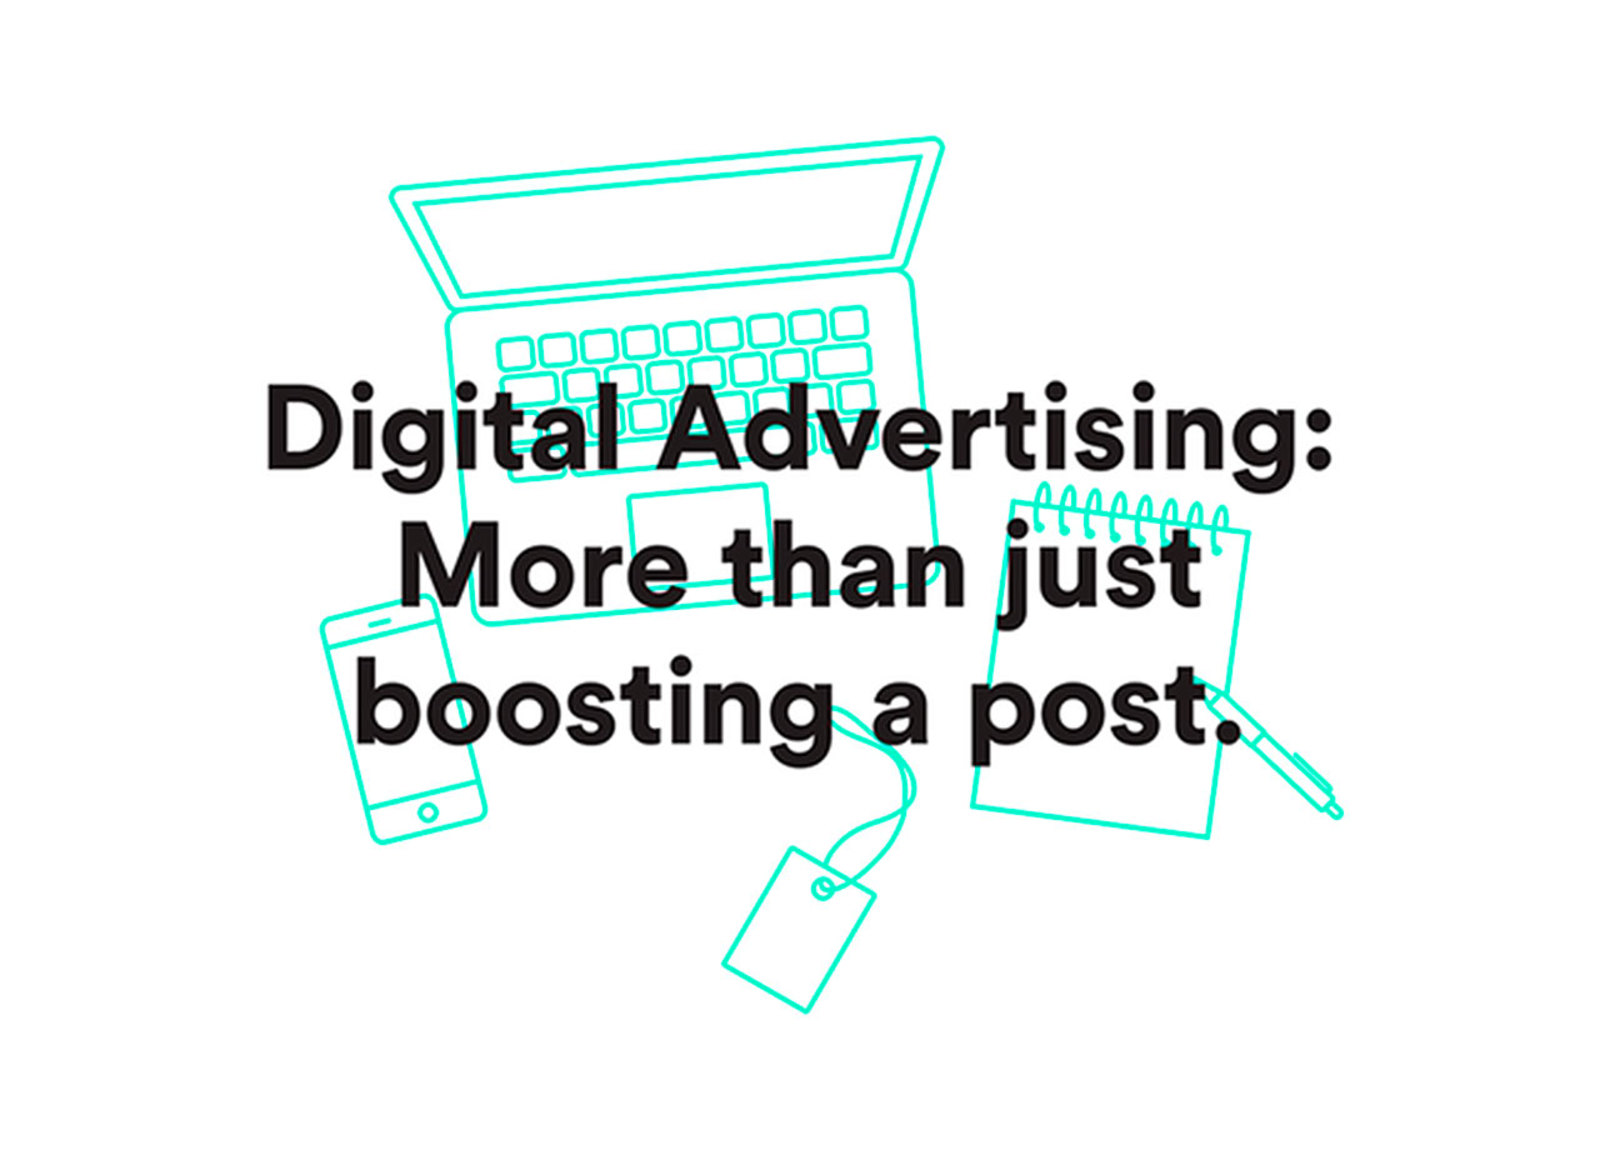 Digital Advertising: More than just boosting a post - Sónar+D Barcelona 2017